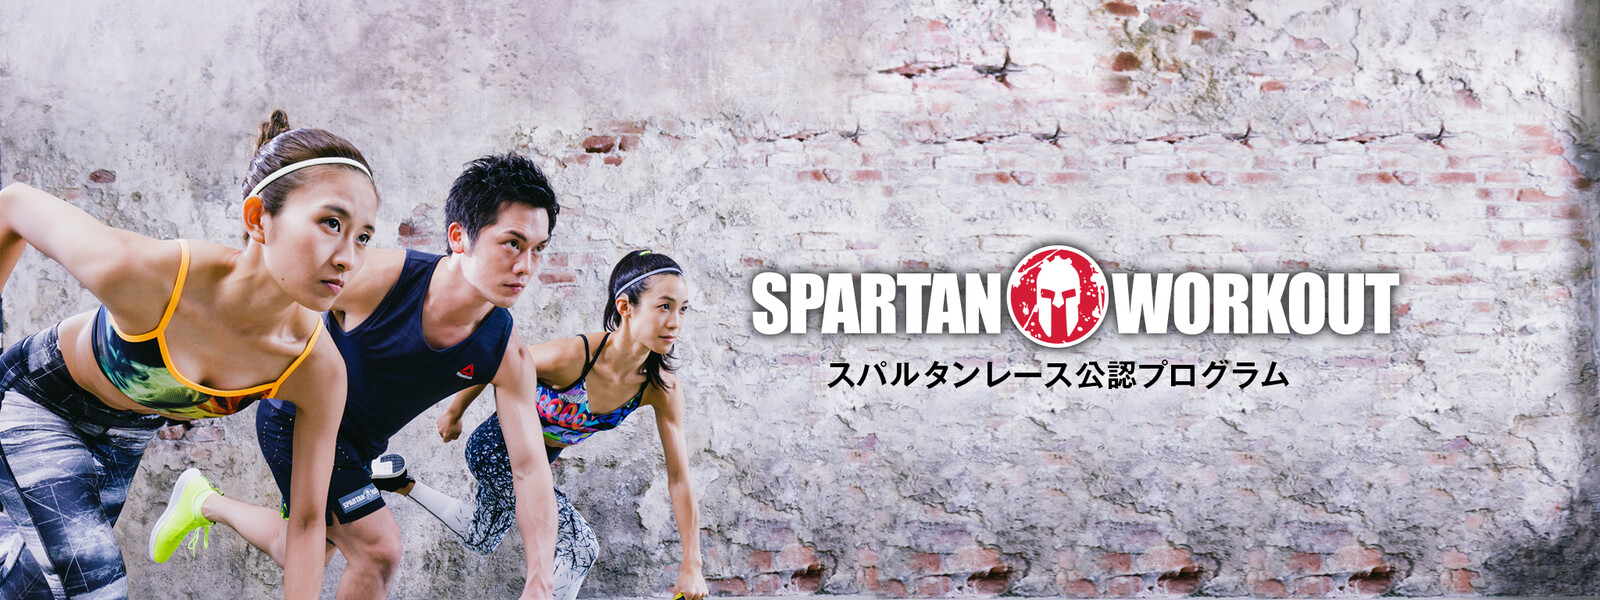 SPARTAN WORKOUT スパルタンレース公認プログラムの動画 - 凛々しく、たおやかに 美カラテFit Supported by 日本生命